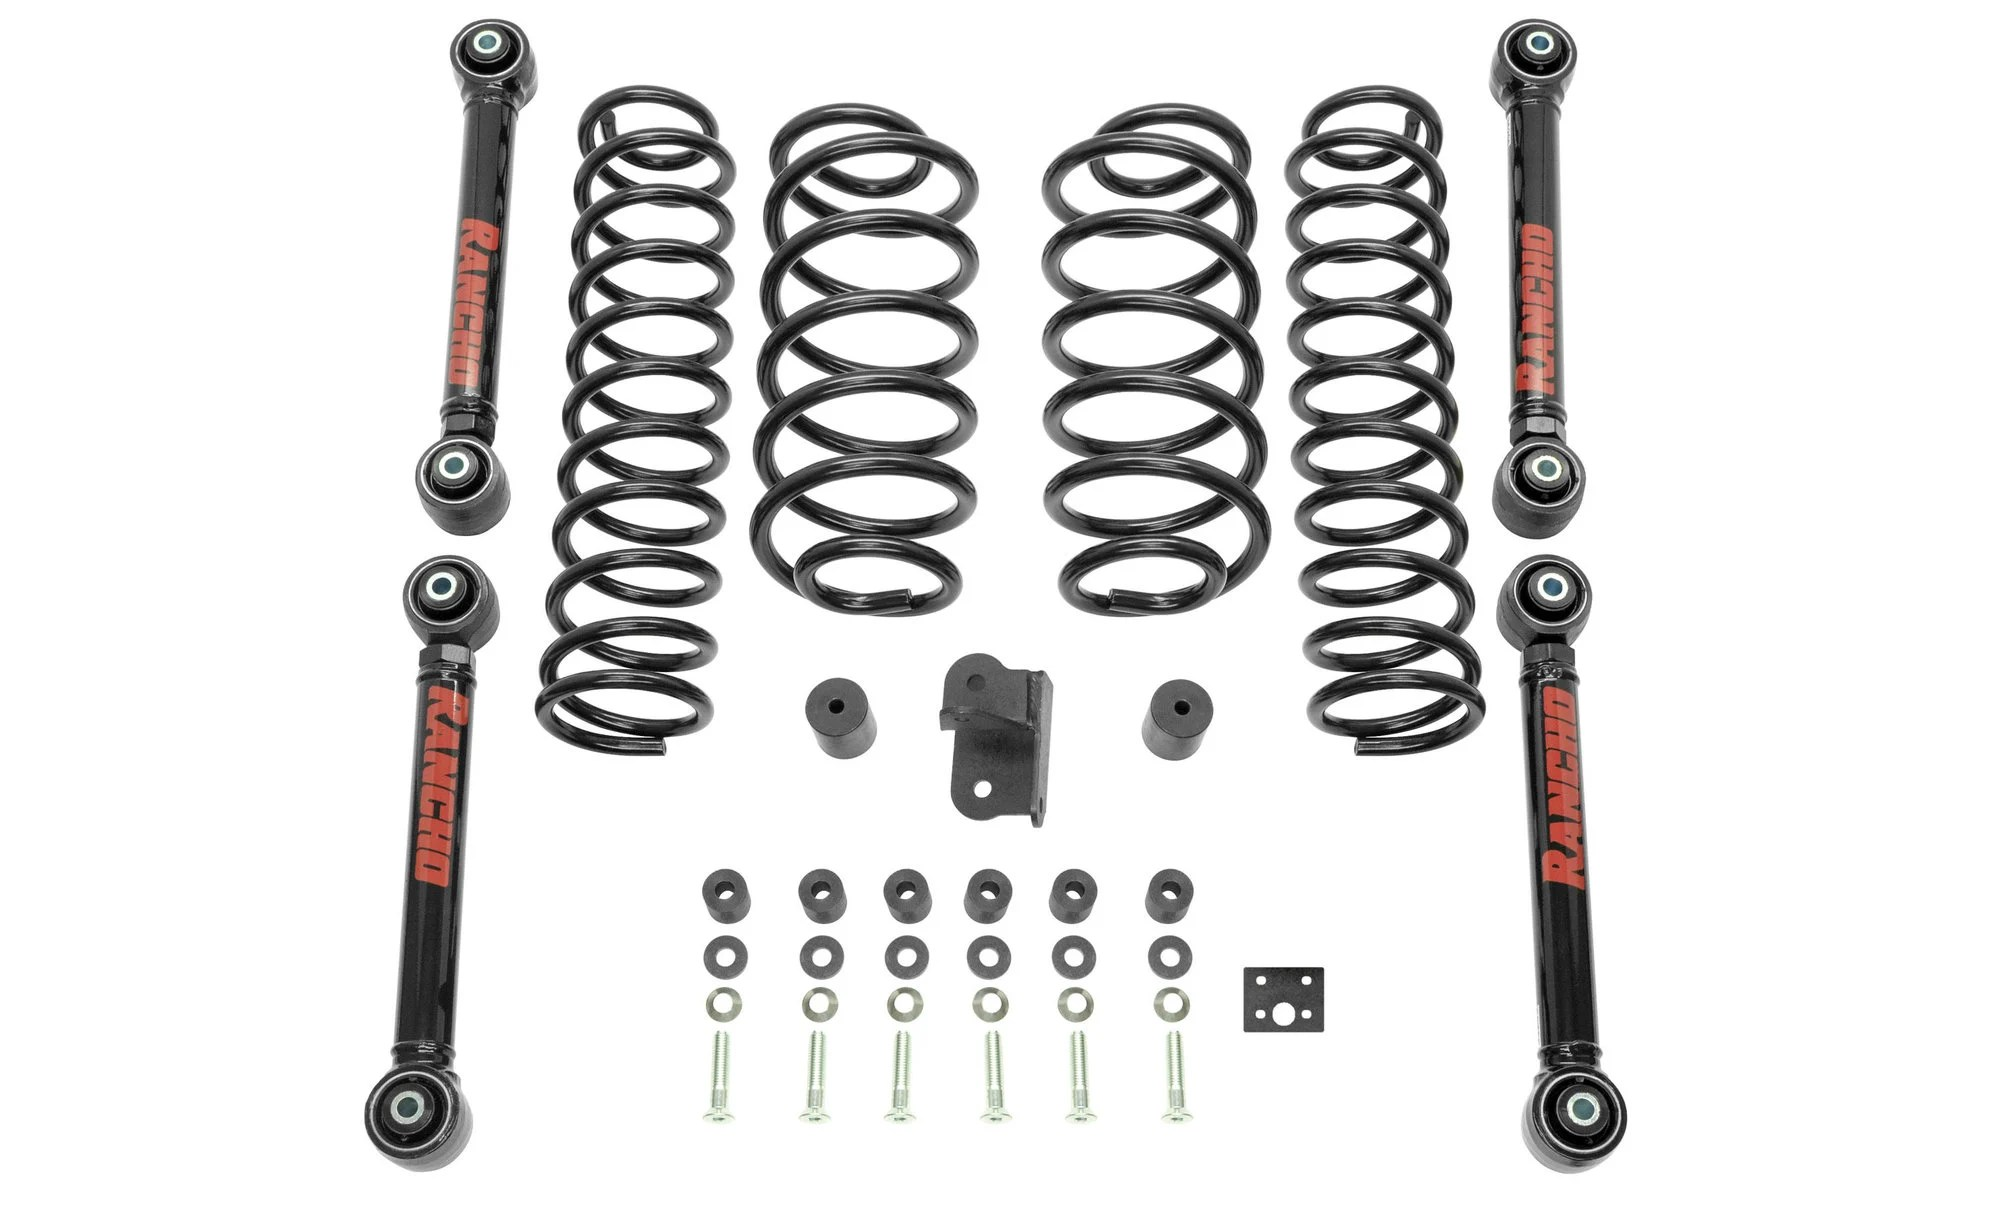 Rancho RS6503B 2.5 Inch Sport Lift Kit for 97-06 Jeep